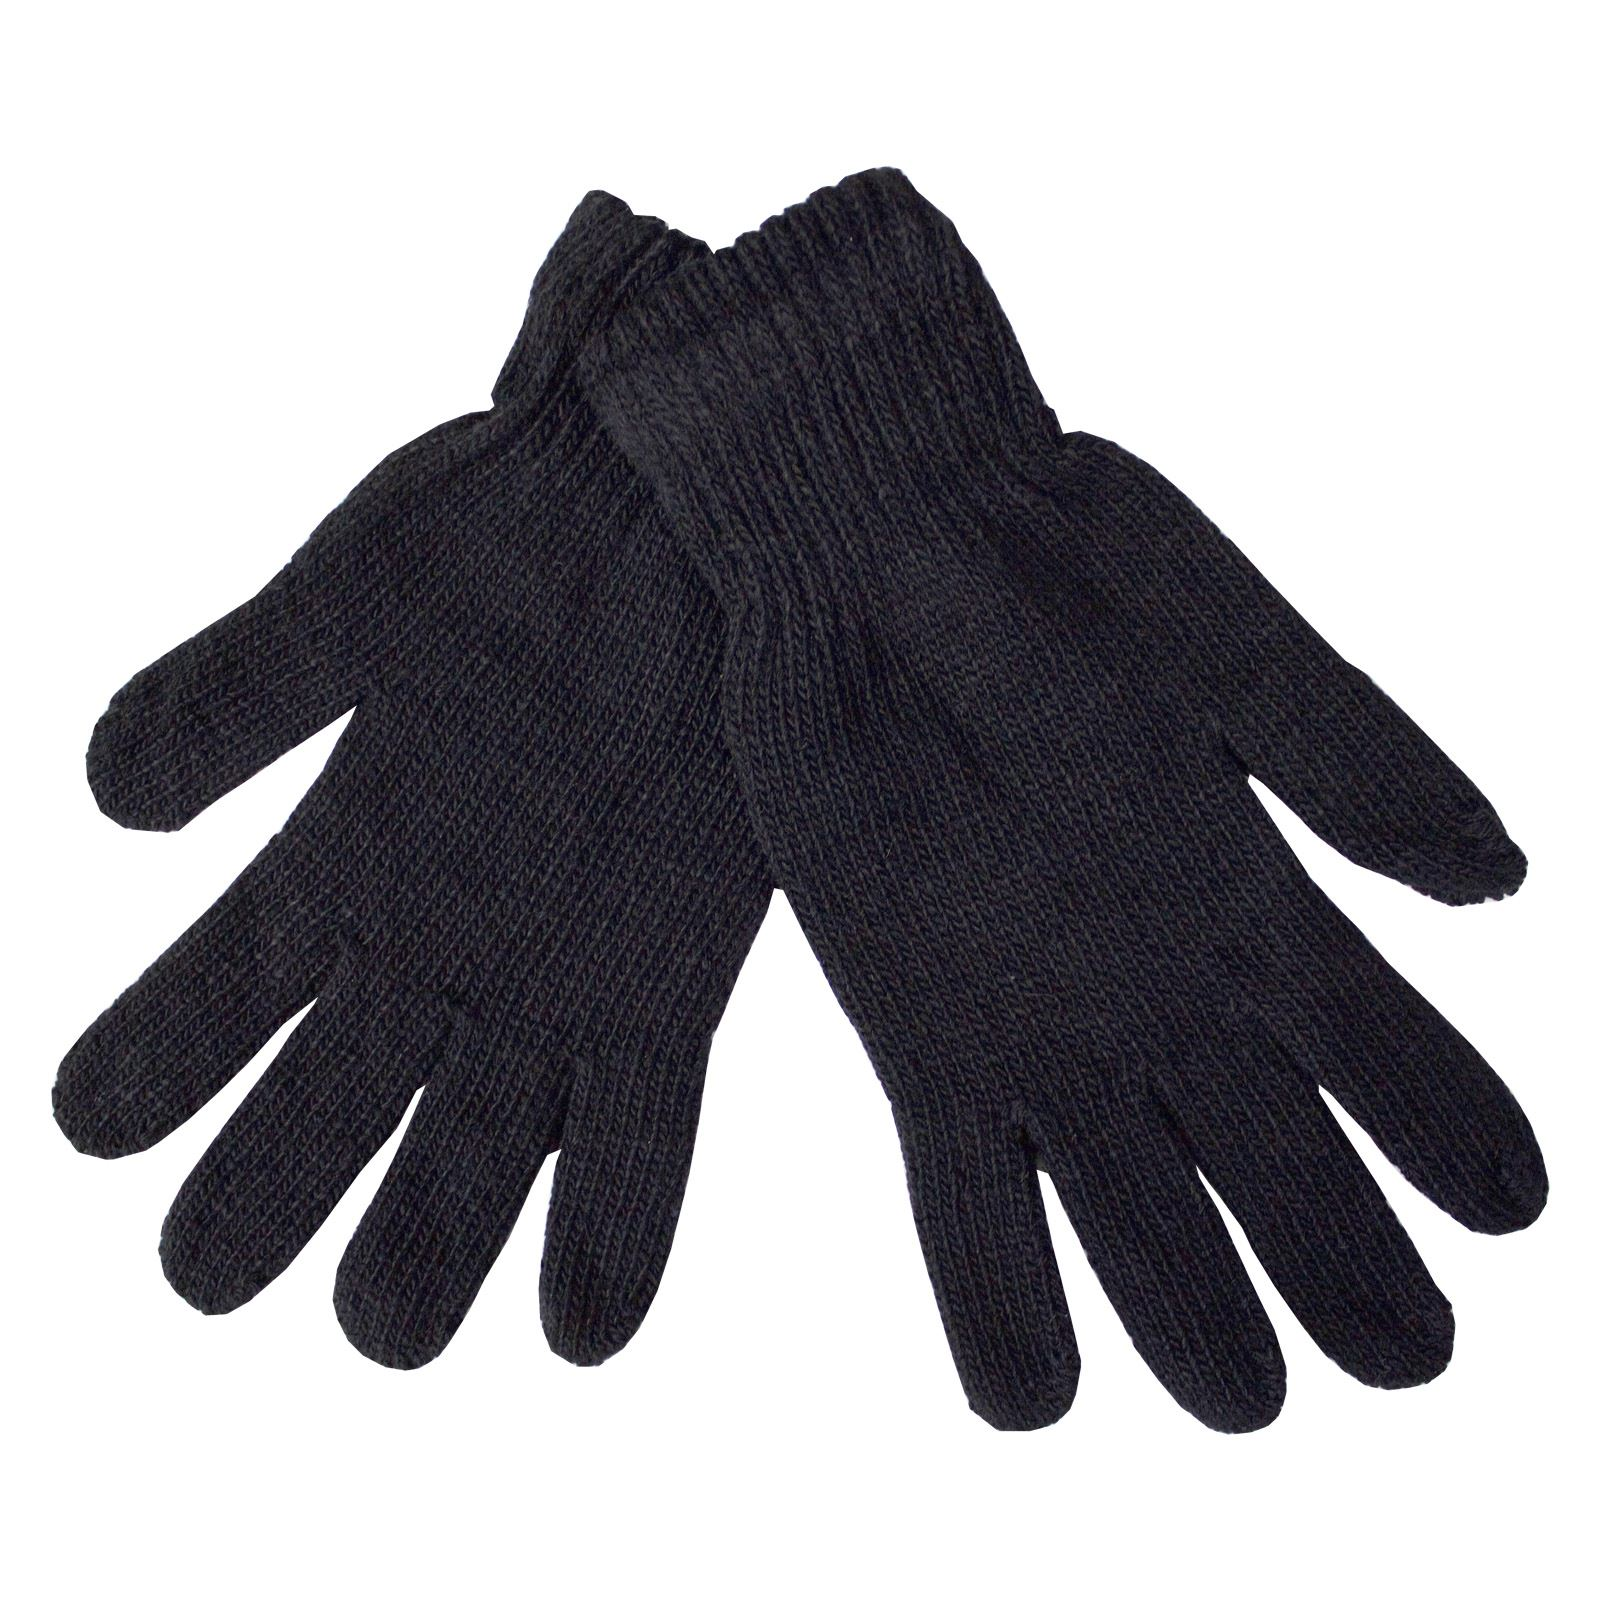 Mens-Thermal-Warm-Heat-Insulator-Glove-Stretch-Knitted-Winter-1-Pair-Of-Gloves